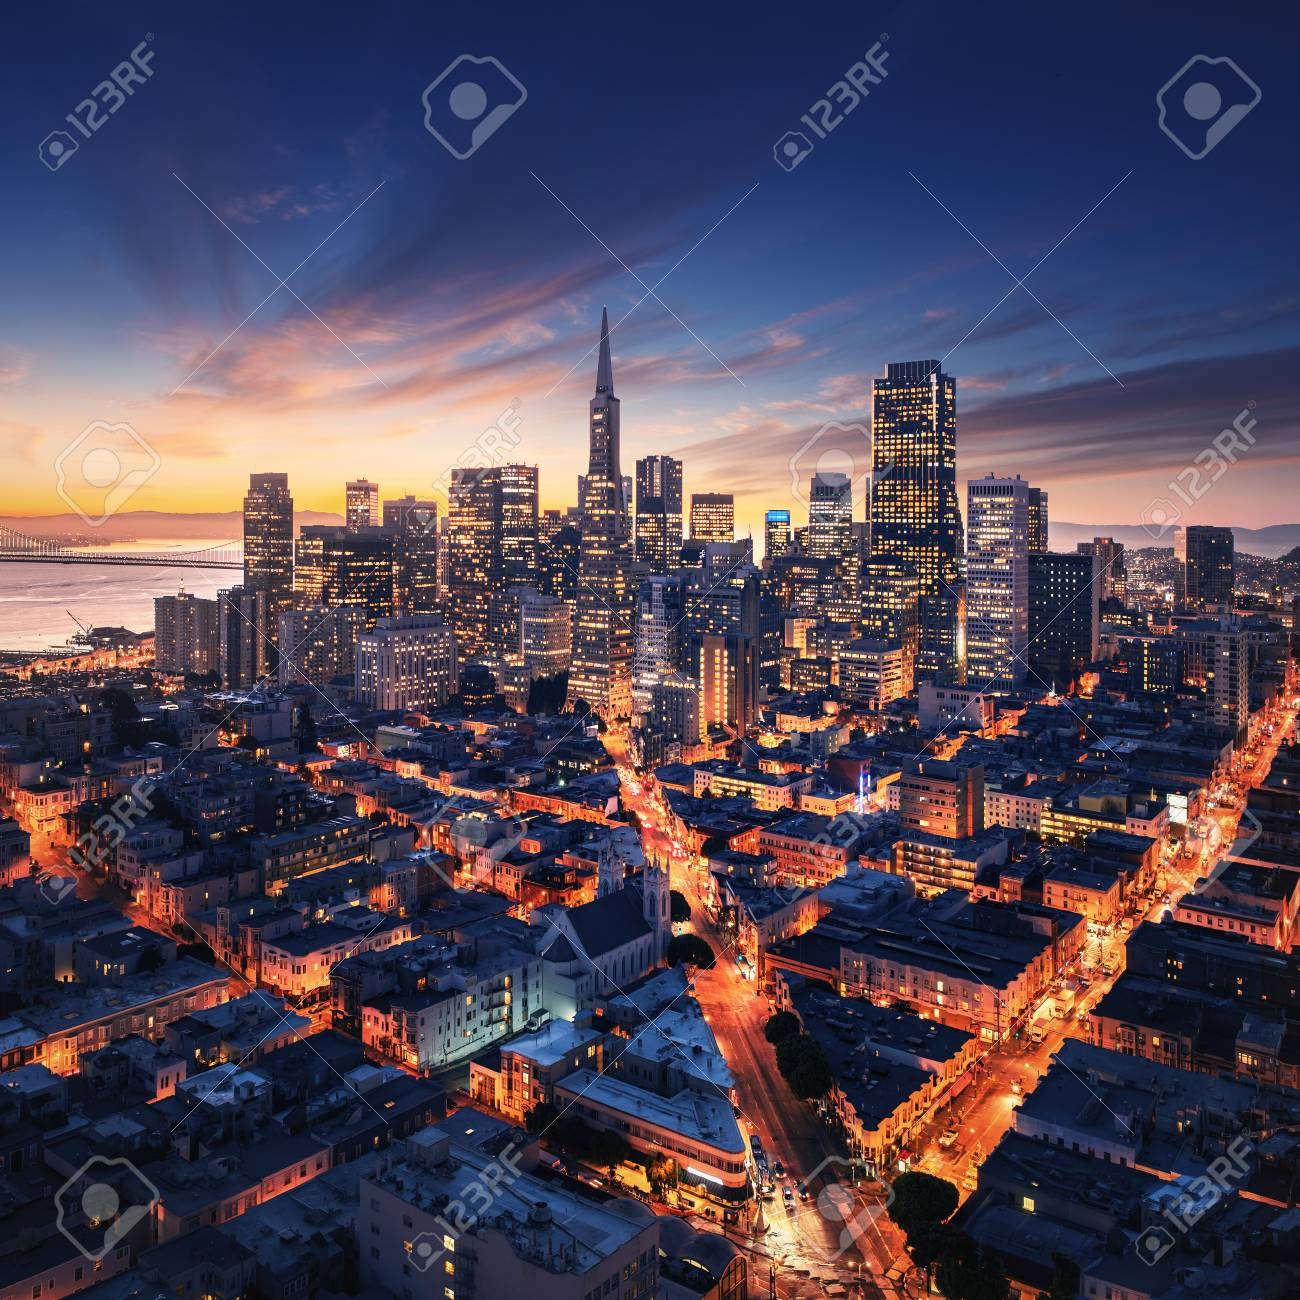 San Francisco aerial view from sea side. Port of San Francisco in the front. City downtown and skyscrapers at sunrise. - 100284985